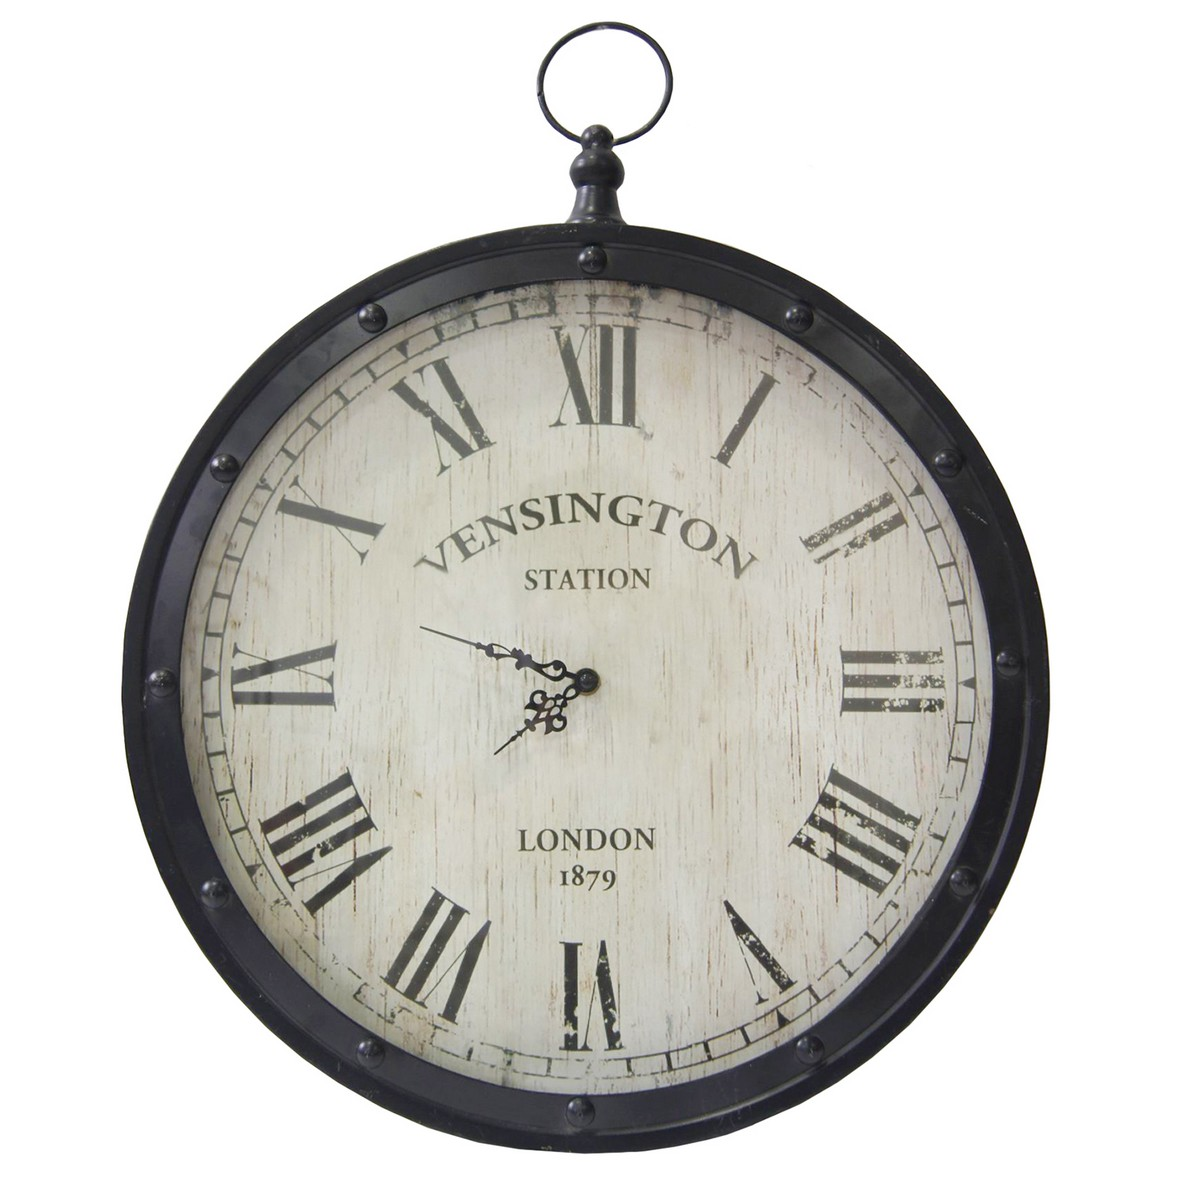 Stratton home decor pocket watch clock black s02383 at for Stratton house